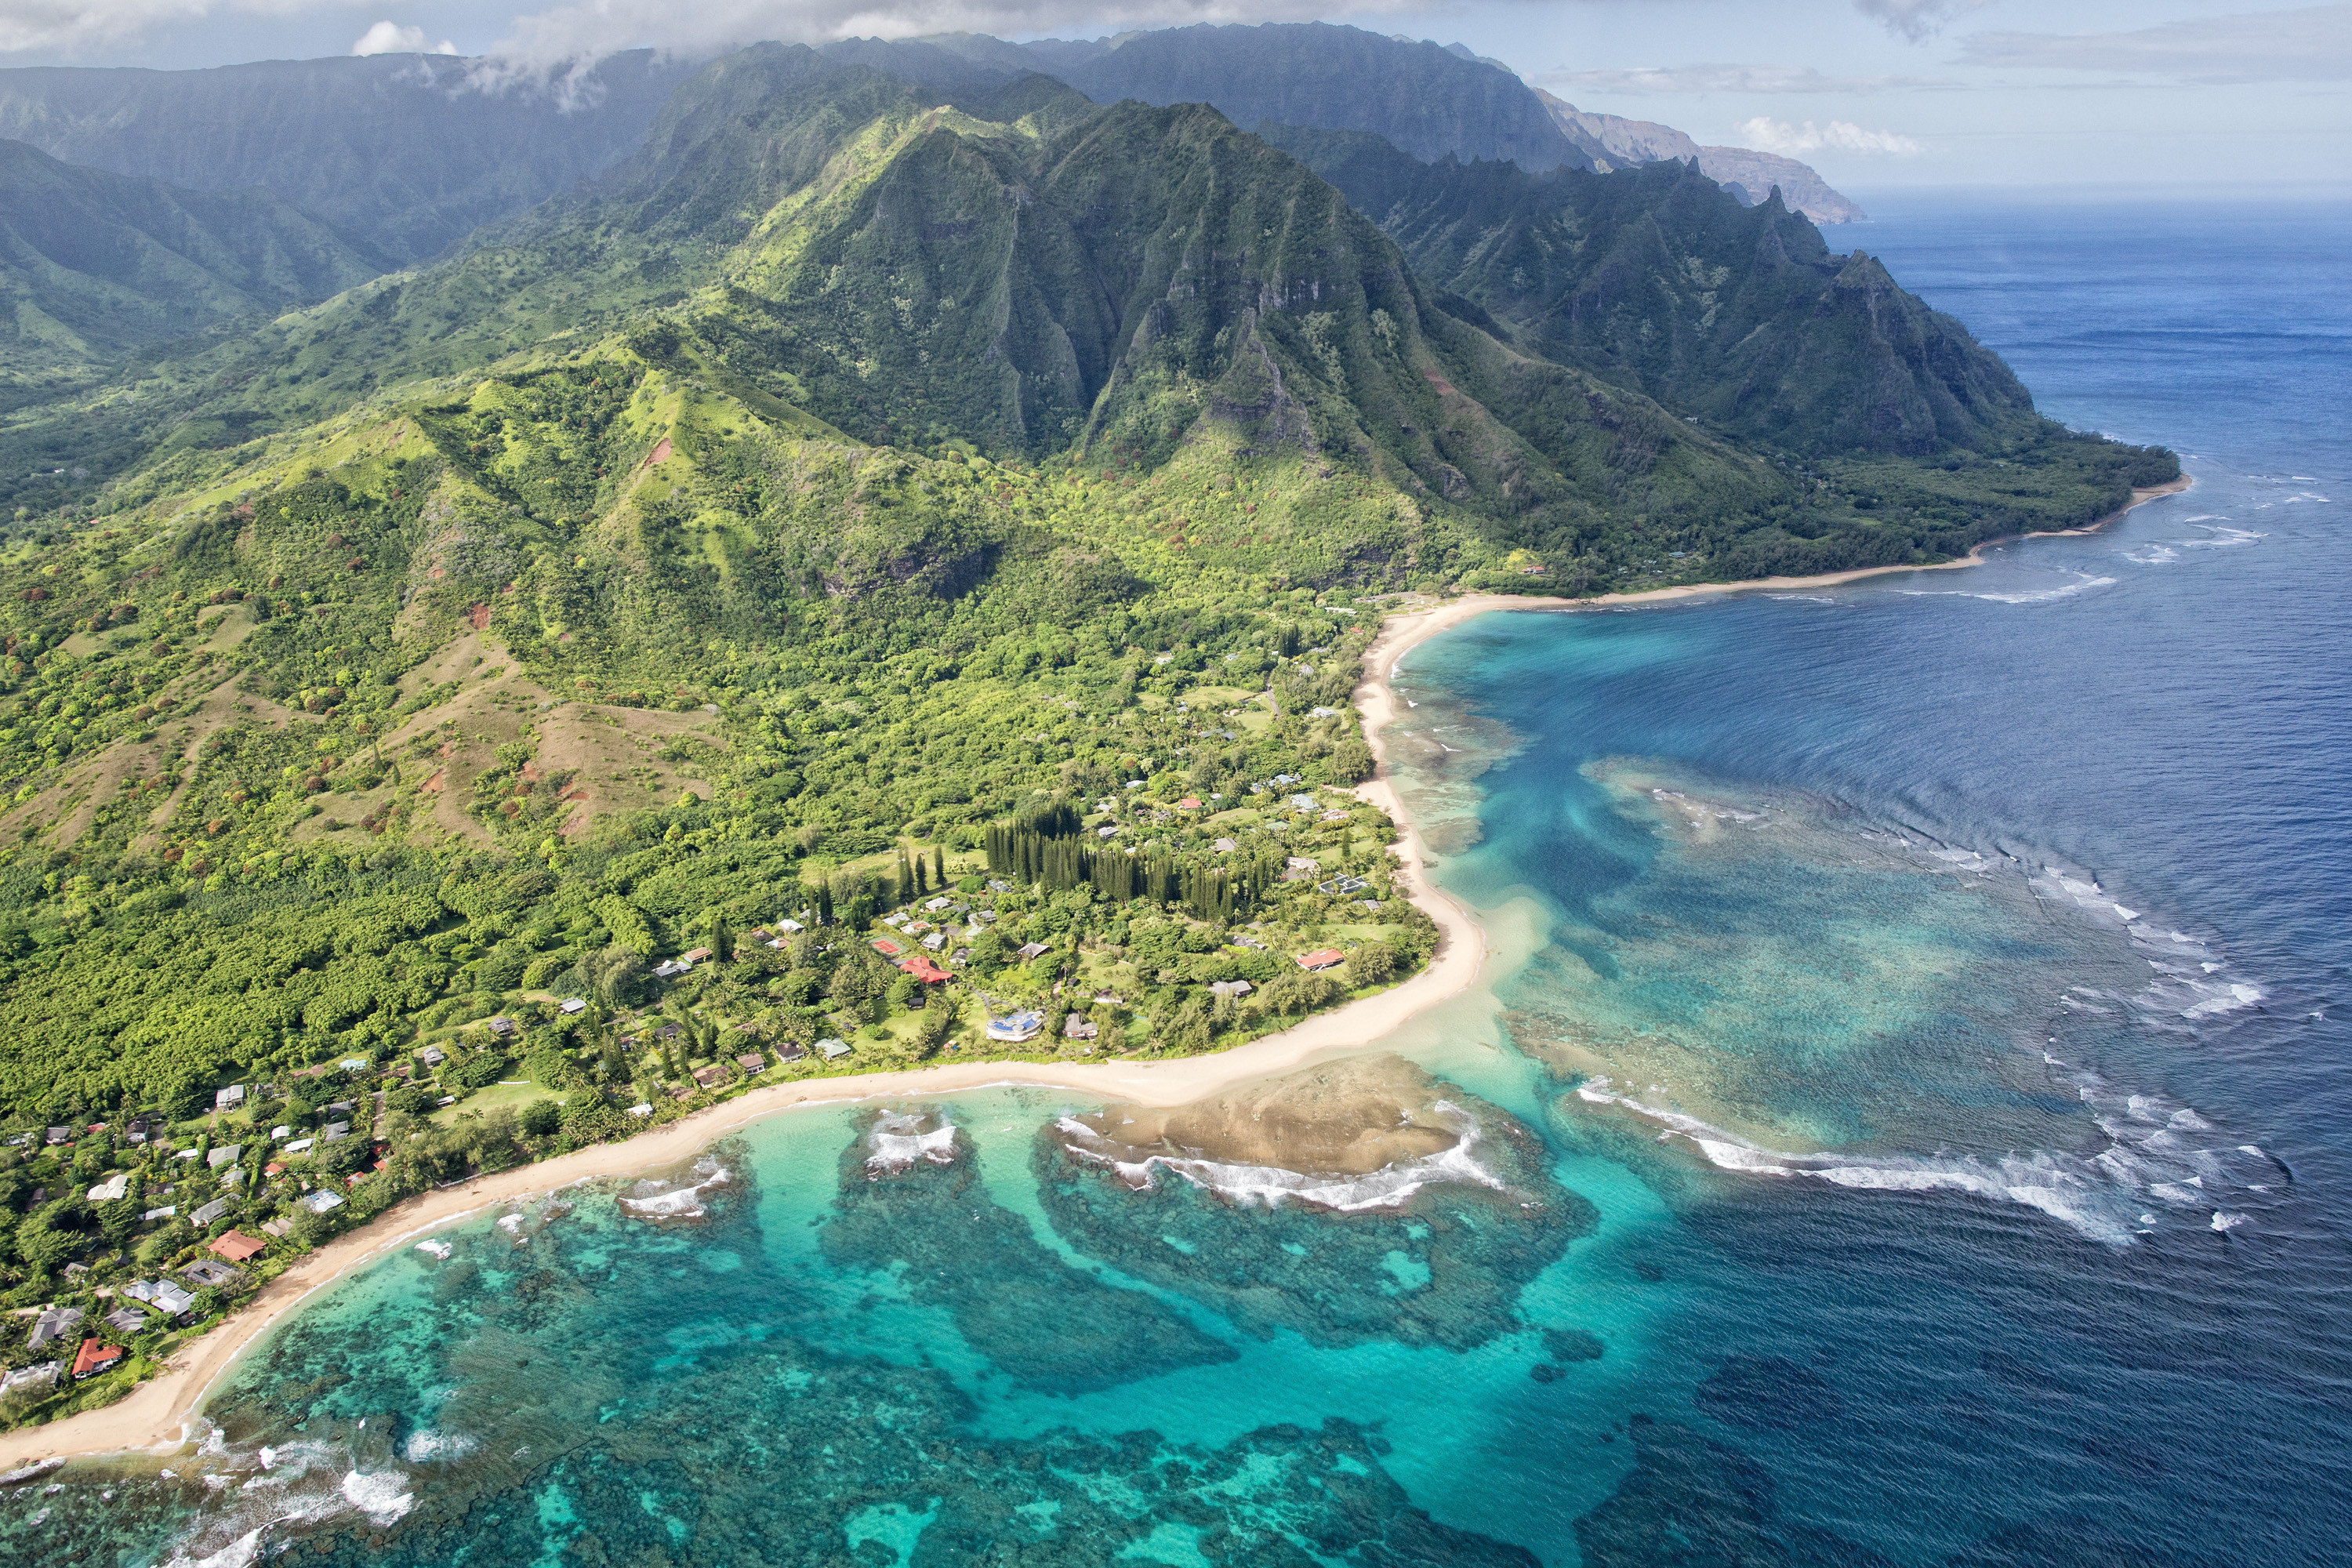 mountain water outdoor Nature coastal and oceanic landforms Coast aerial photography Sea headland promontory cape photography Island bay peninsula bird's eye view shore archipelago inlet islet Ocean mount scenery tropics water resources sky Lagoon tourism caribbean cove